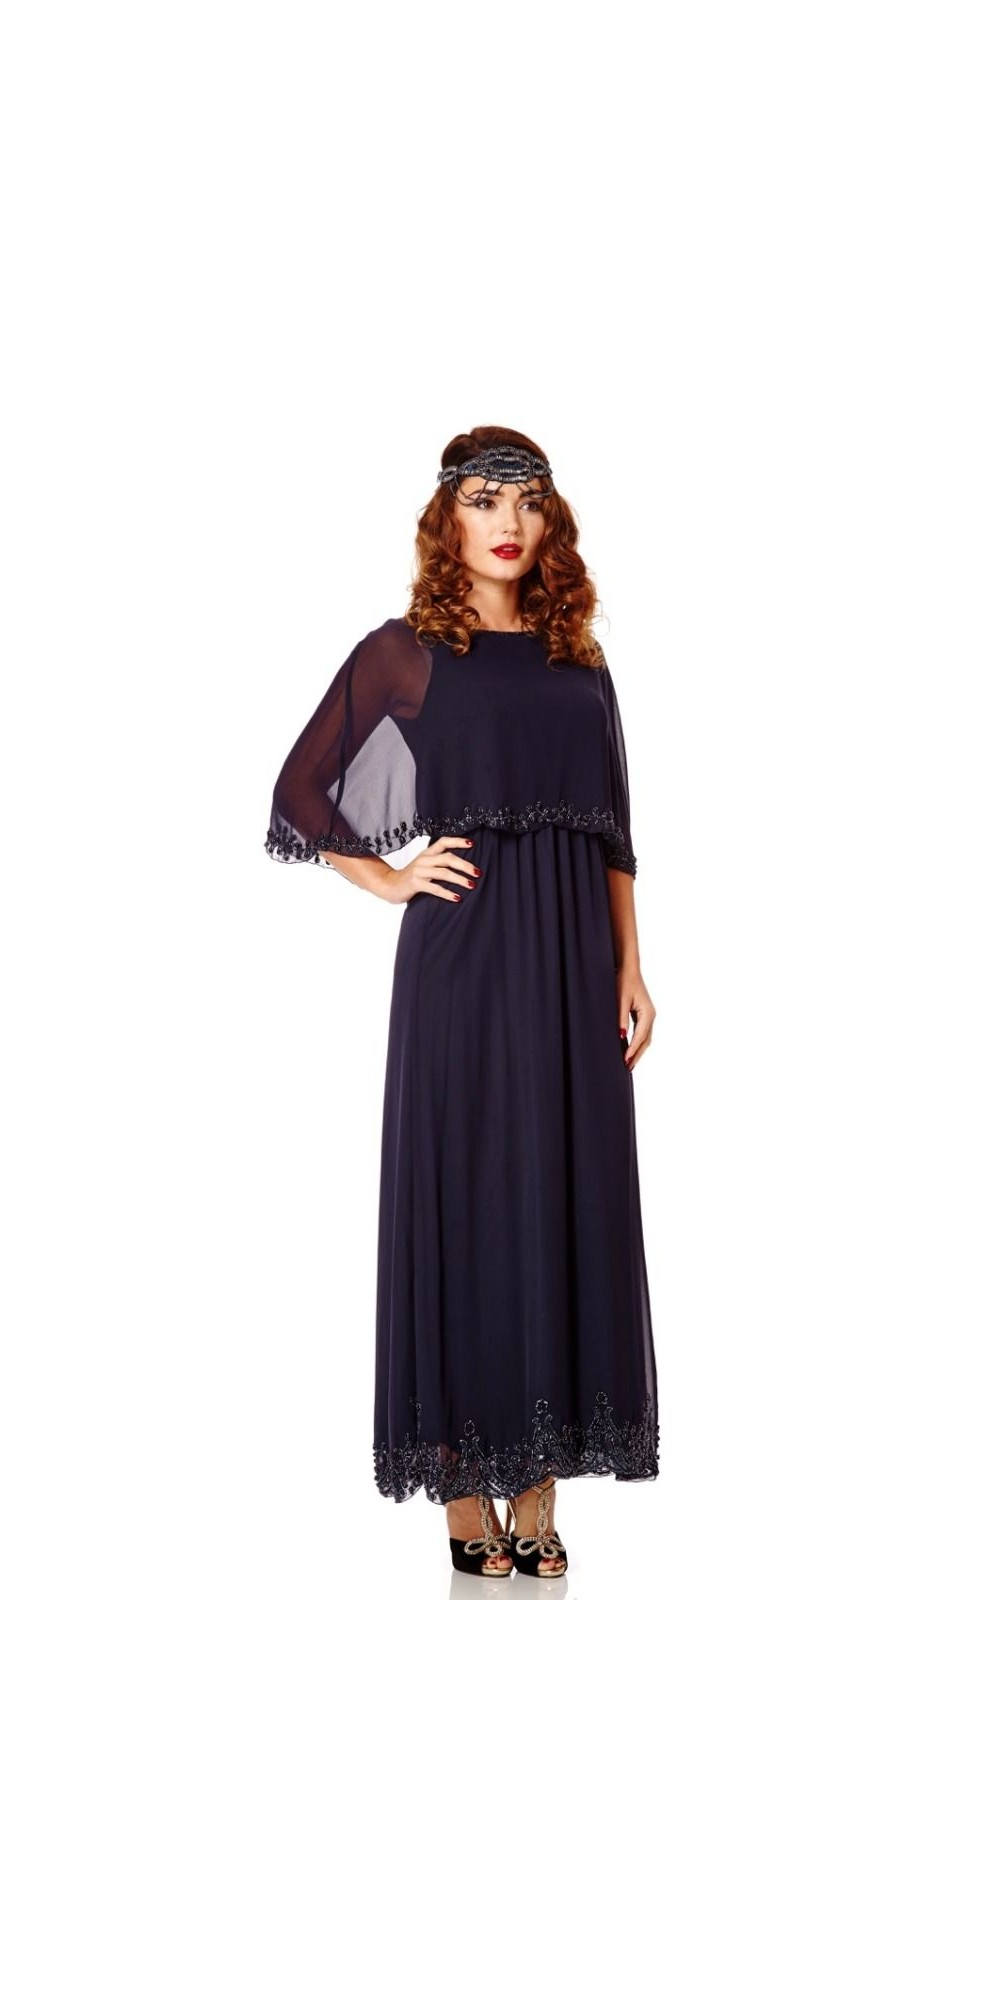 Cape dress maxi plus